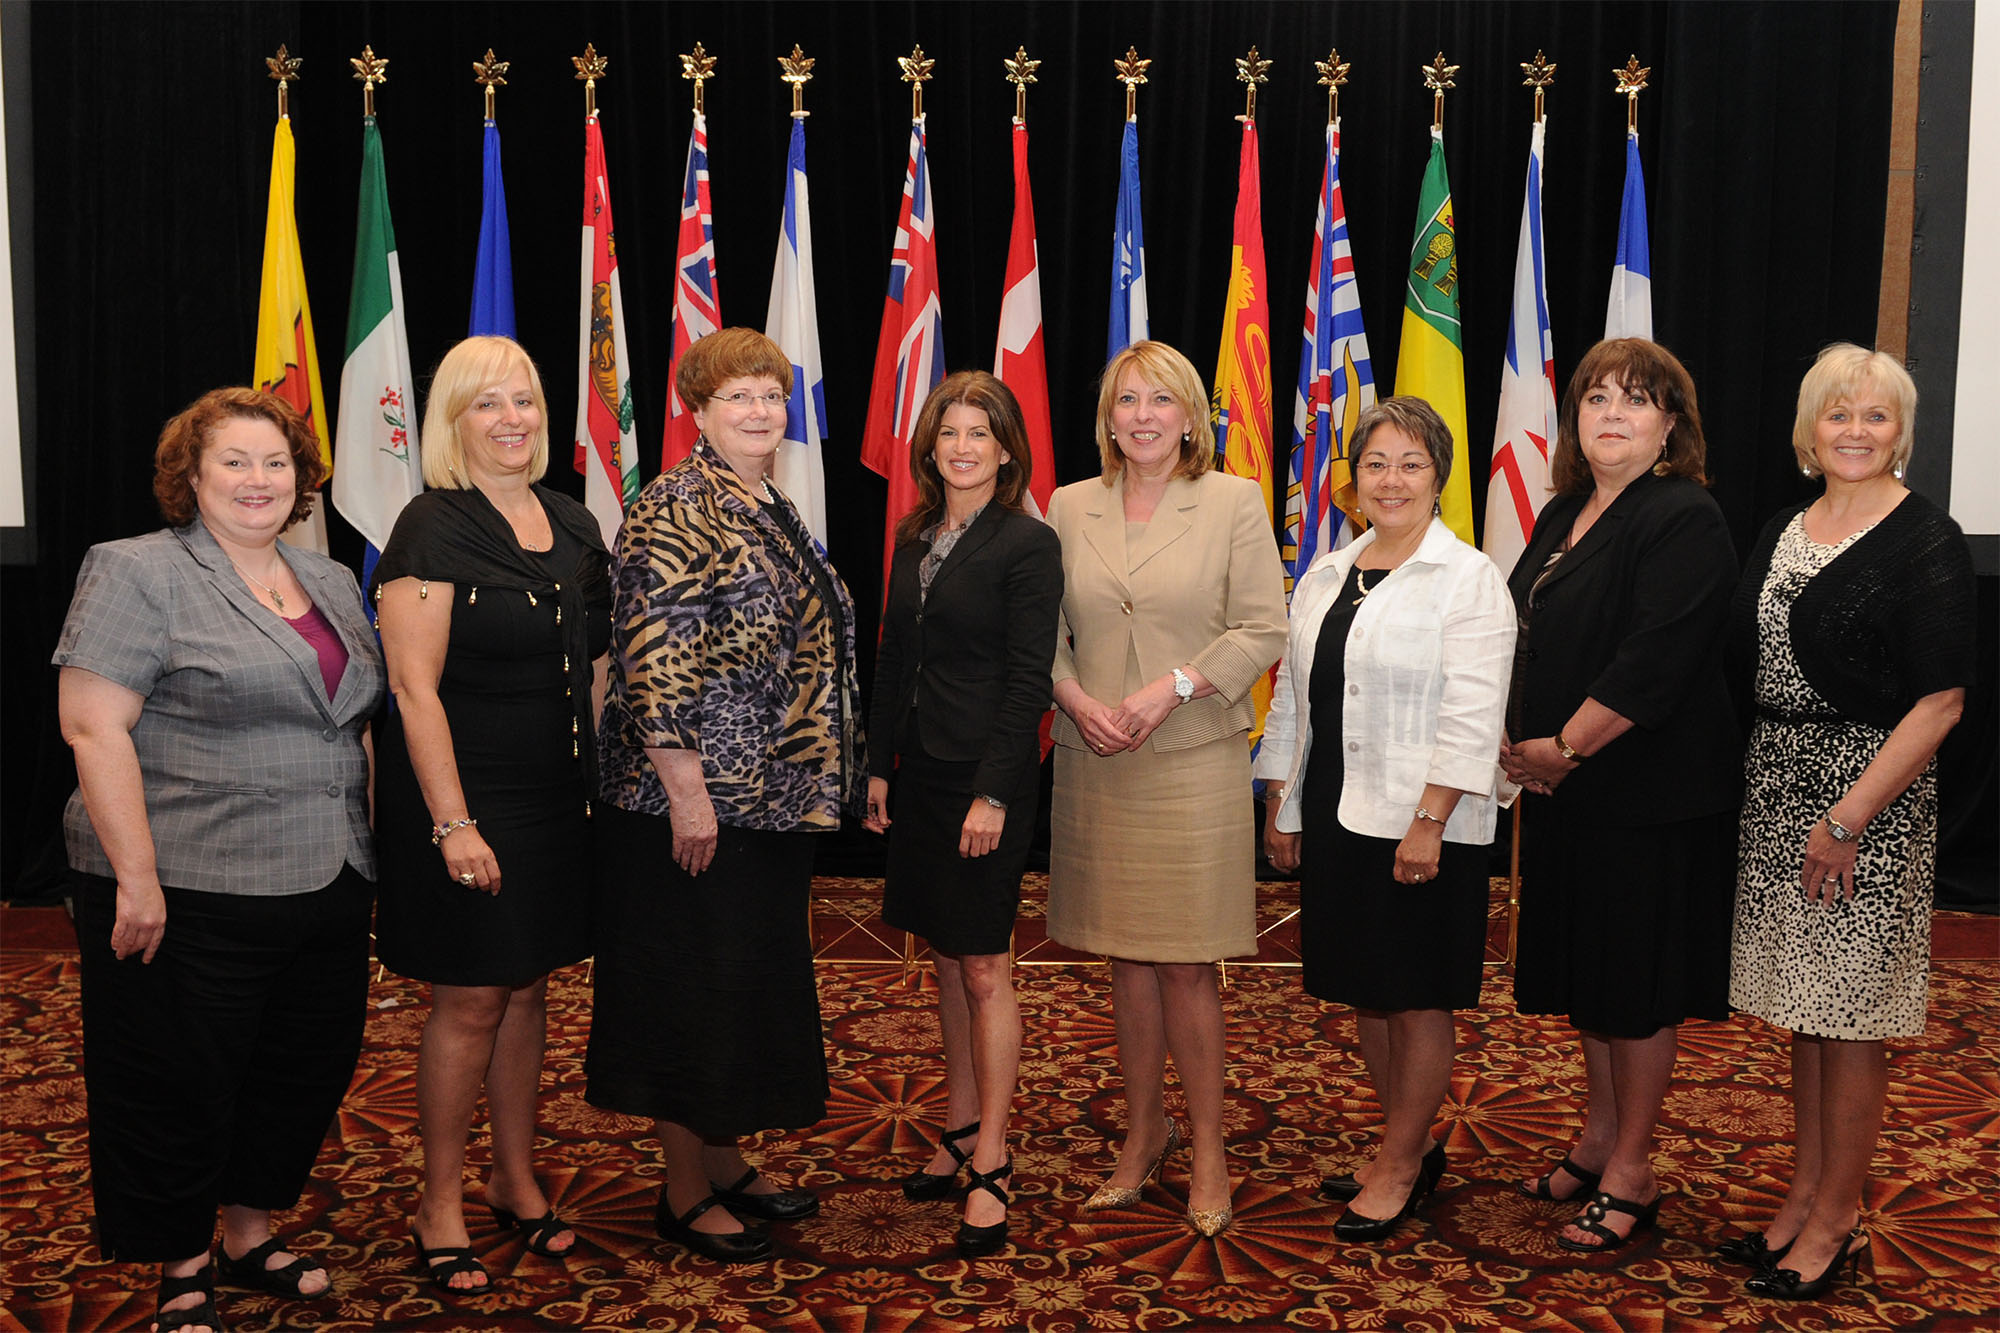 29th Annual Federal-Provincial-Territorial Meeting of Ministers responsible for